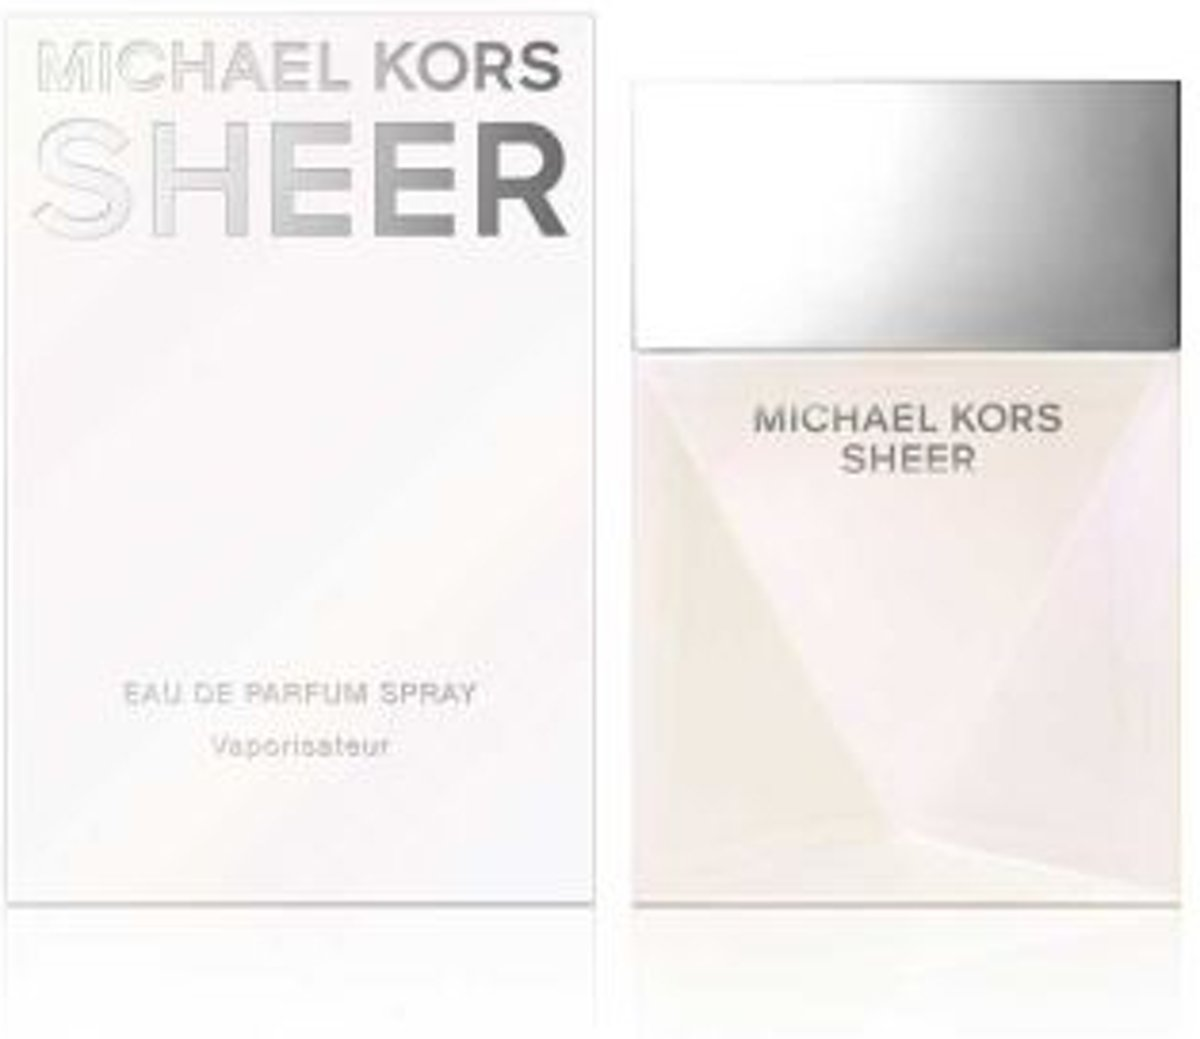 Michael Kors Sheer - 50 ml - eau de parfum spray - damesparfum